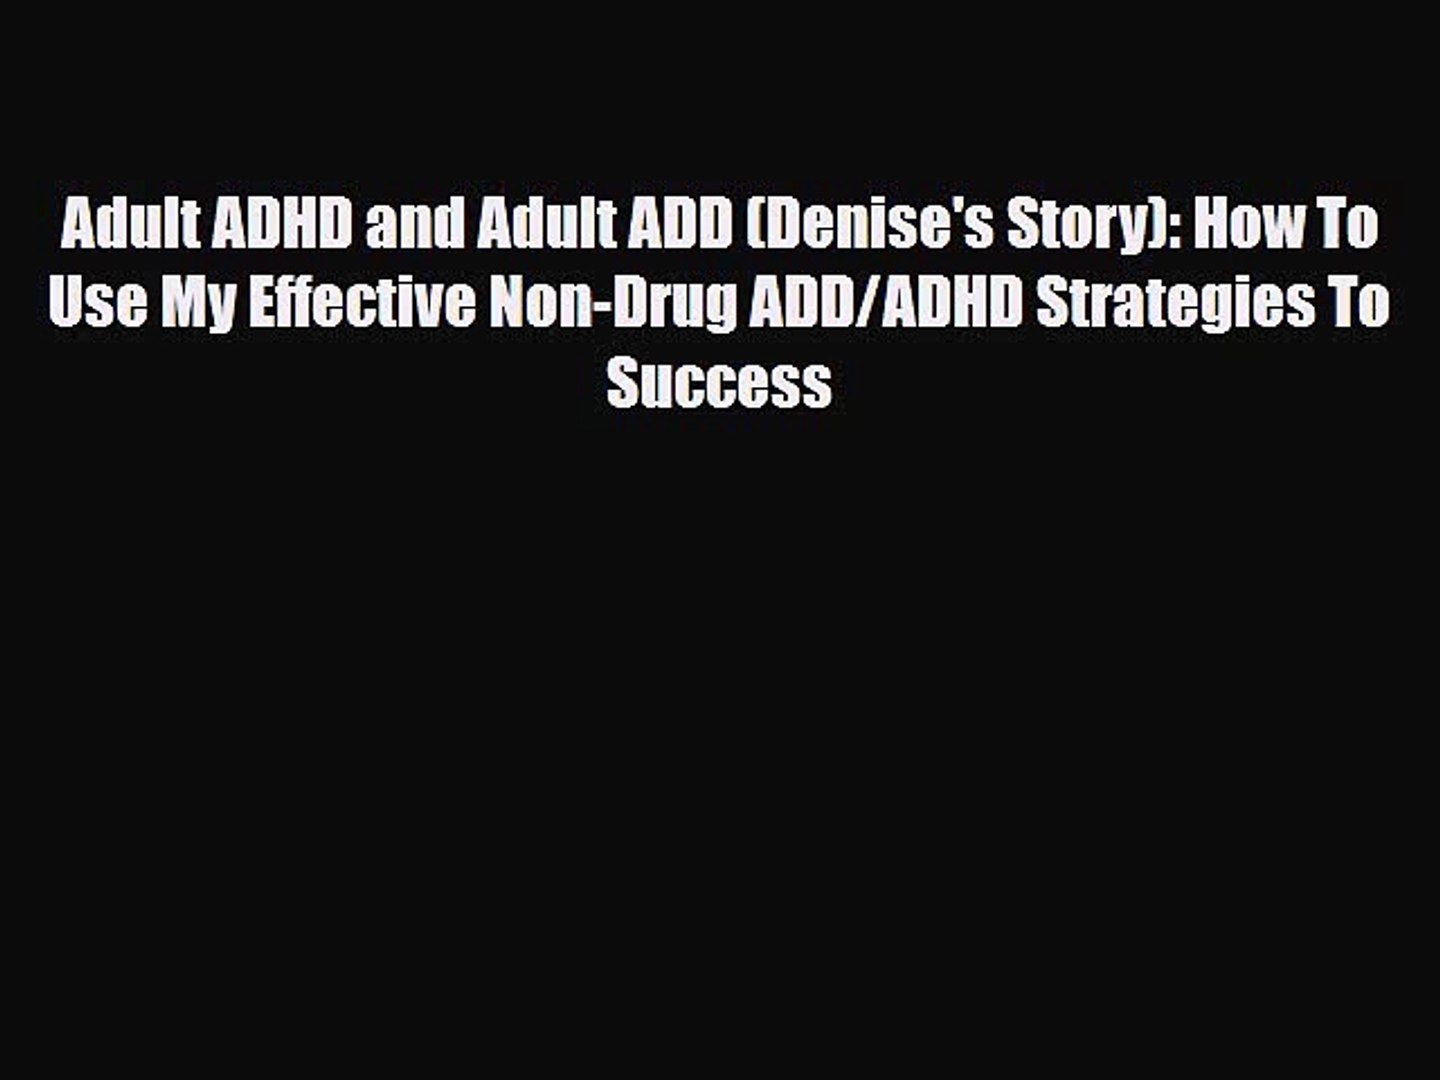 Read Adult ADHD and Adult ADD (Denise's Story): How To Use My Effective Non-Drug ADD/ADHD